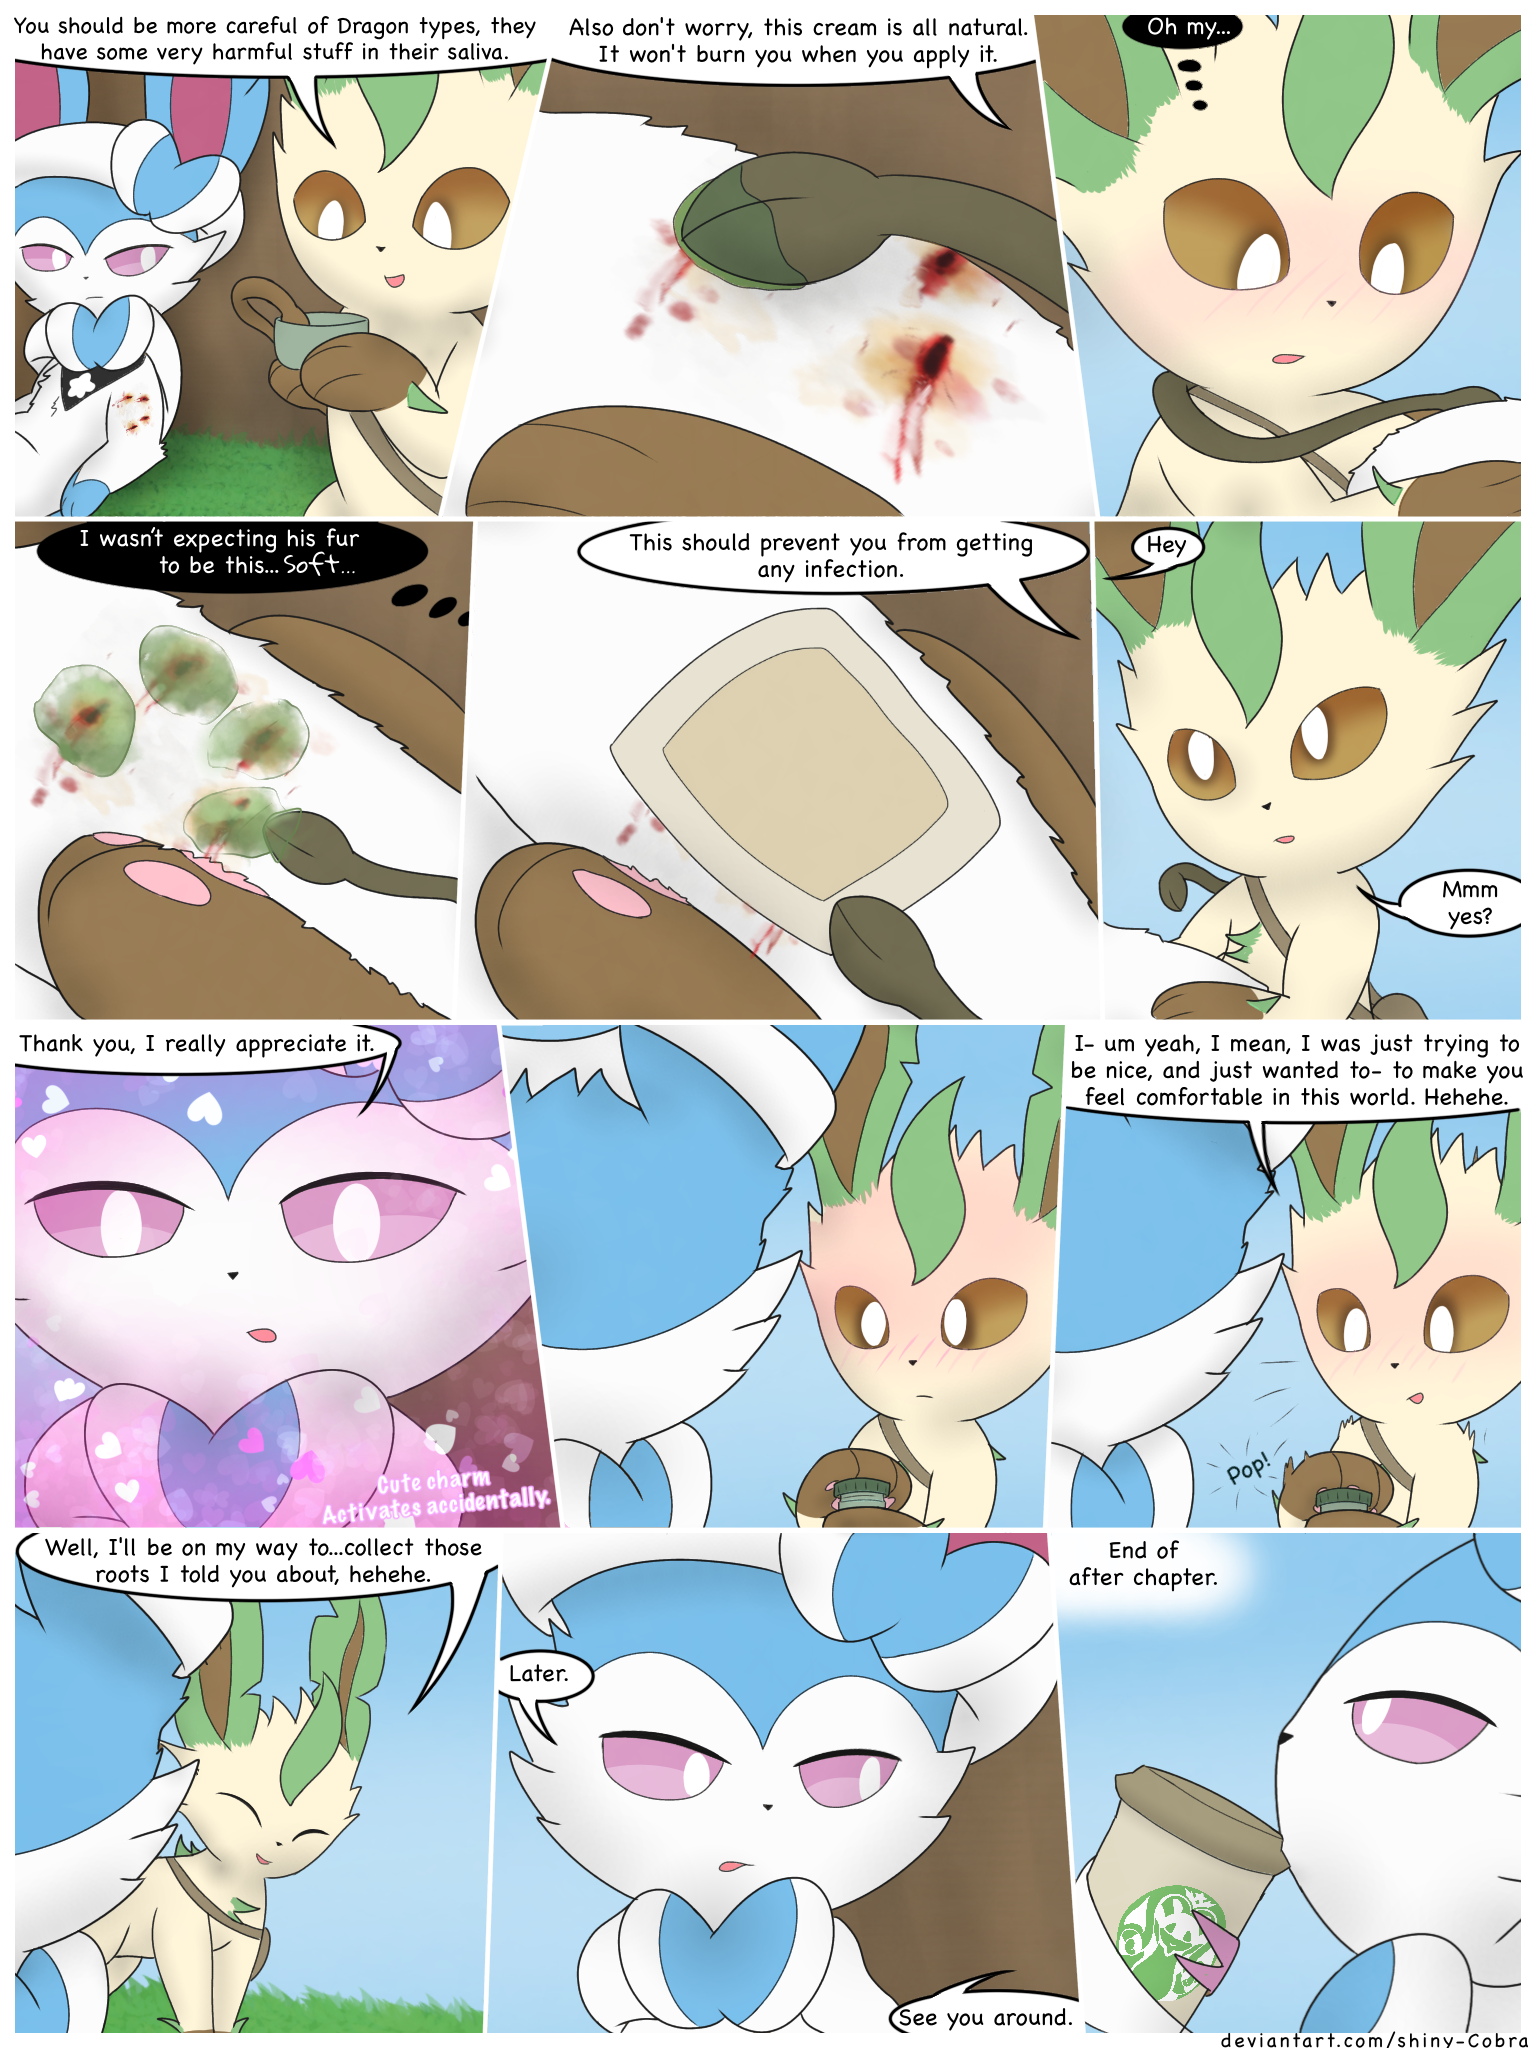 After chapter 3 page 2 (end)